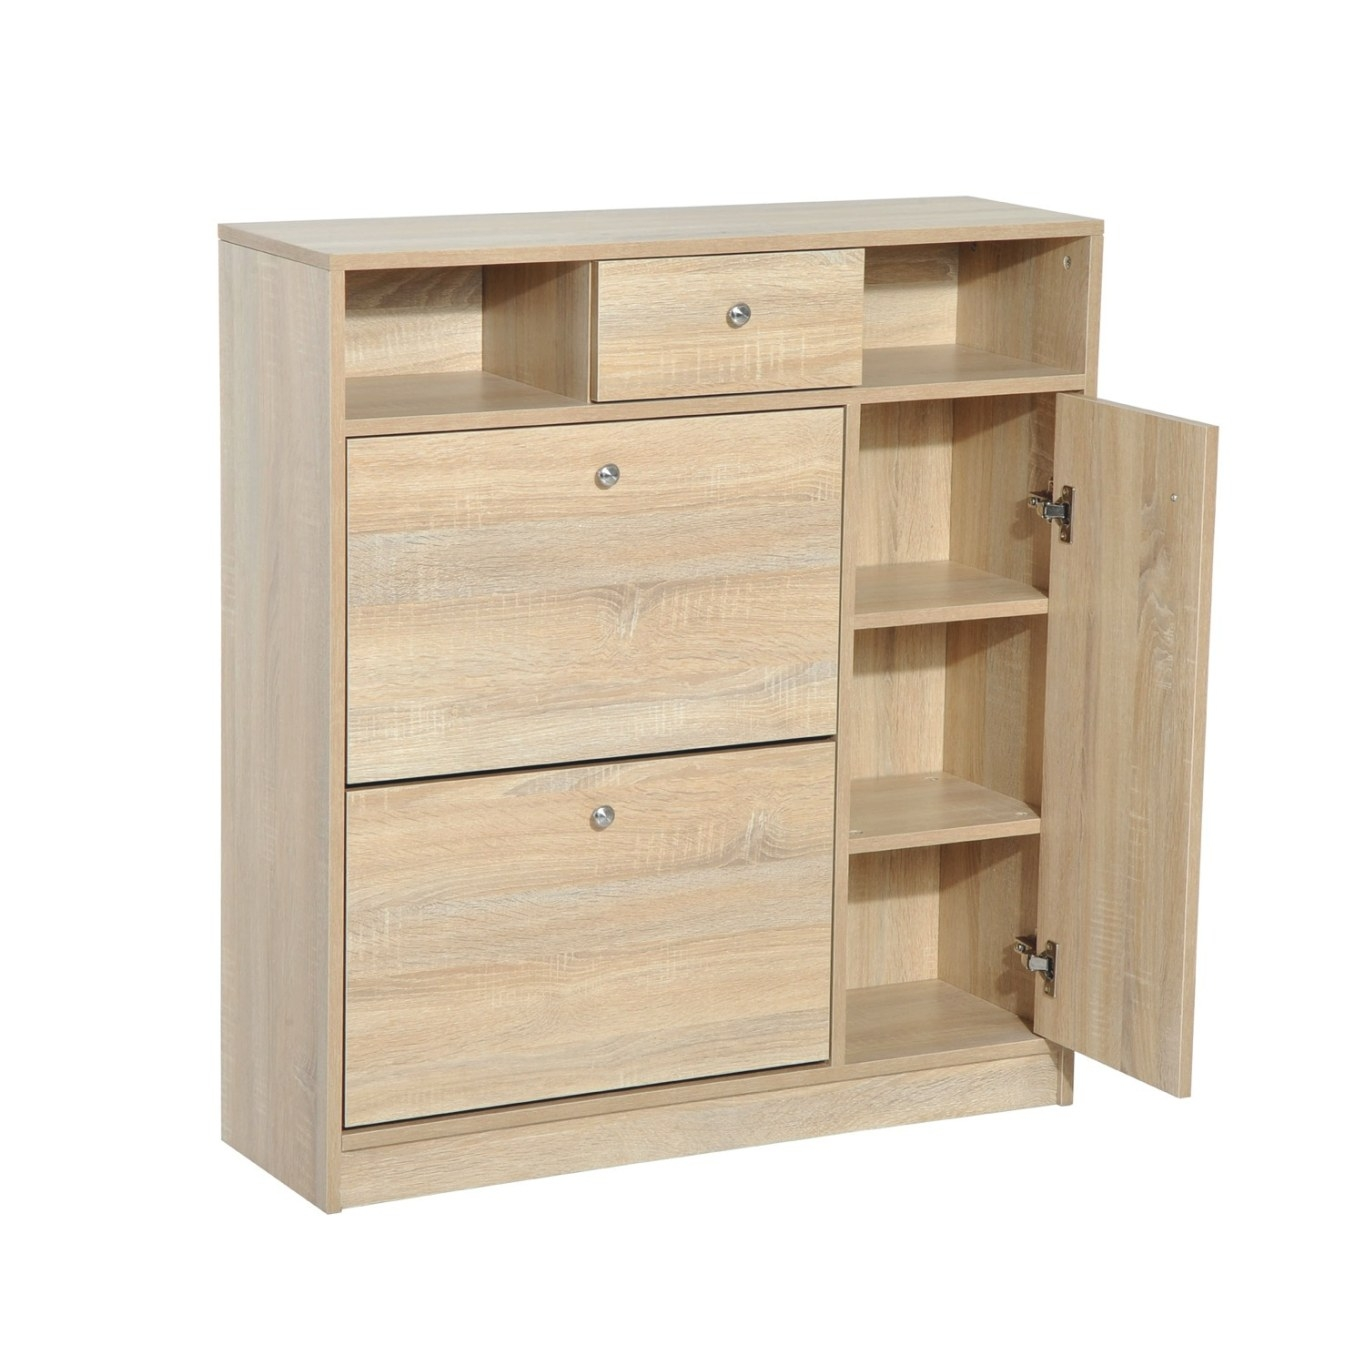 Homcom Shoe Cabinet - Pull Out Door & Drawer Organizer with regard to Shoe Cabinet With Doors